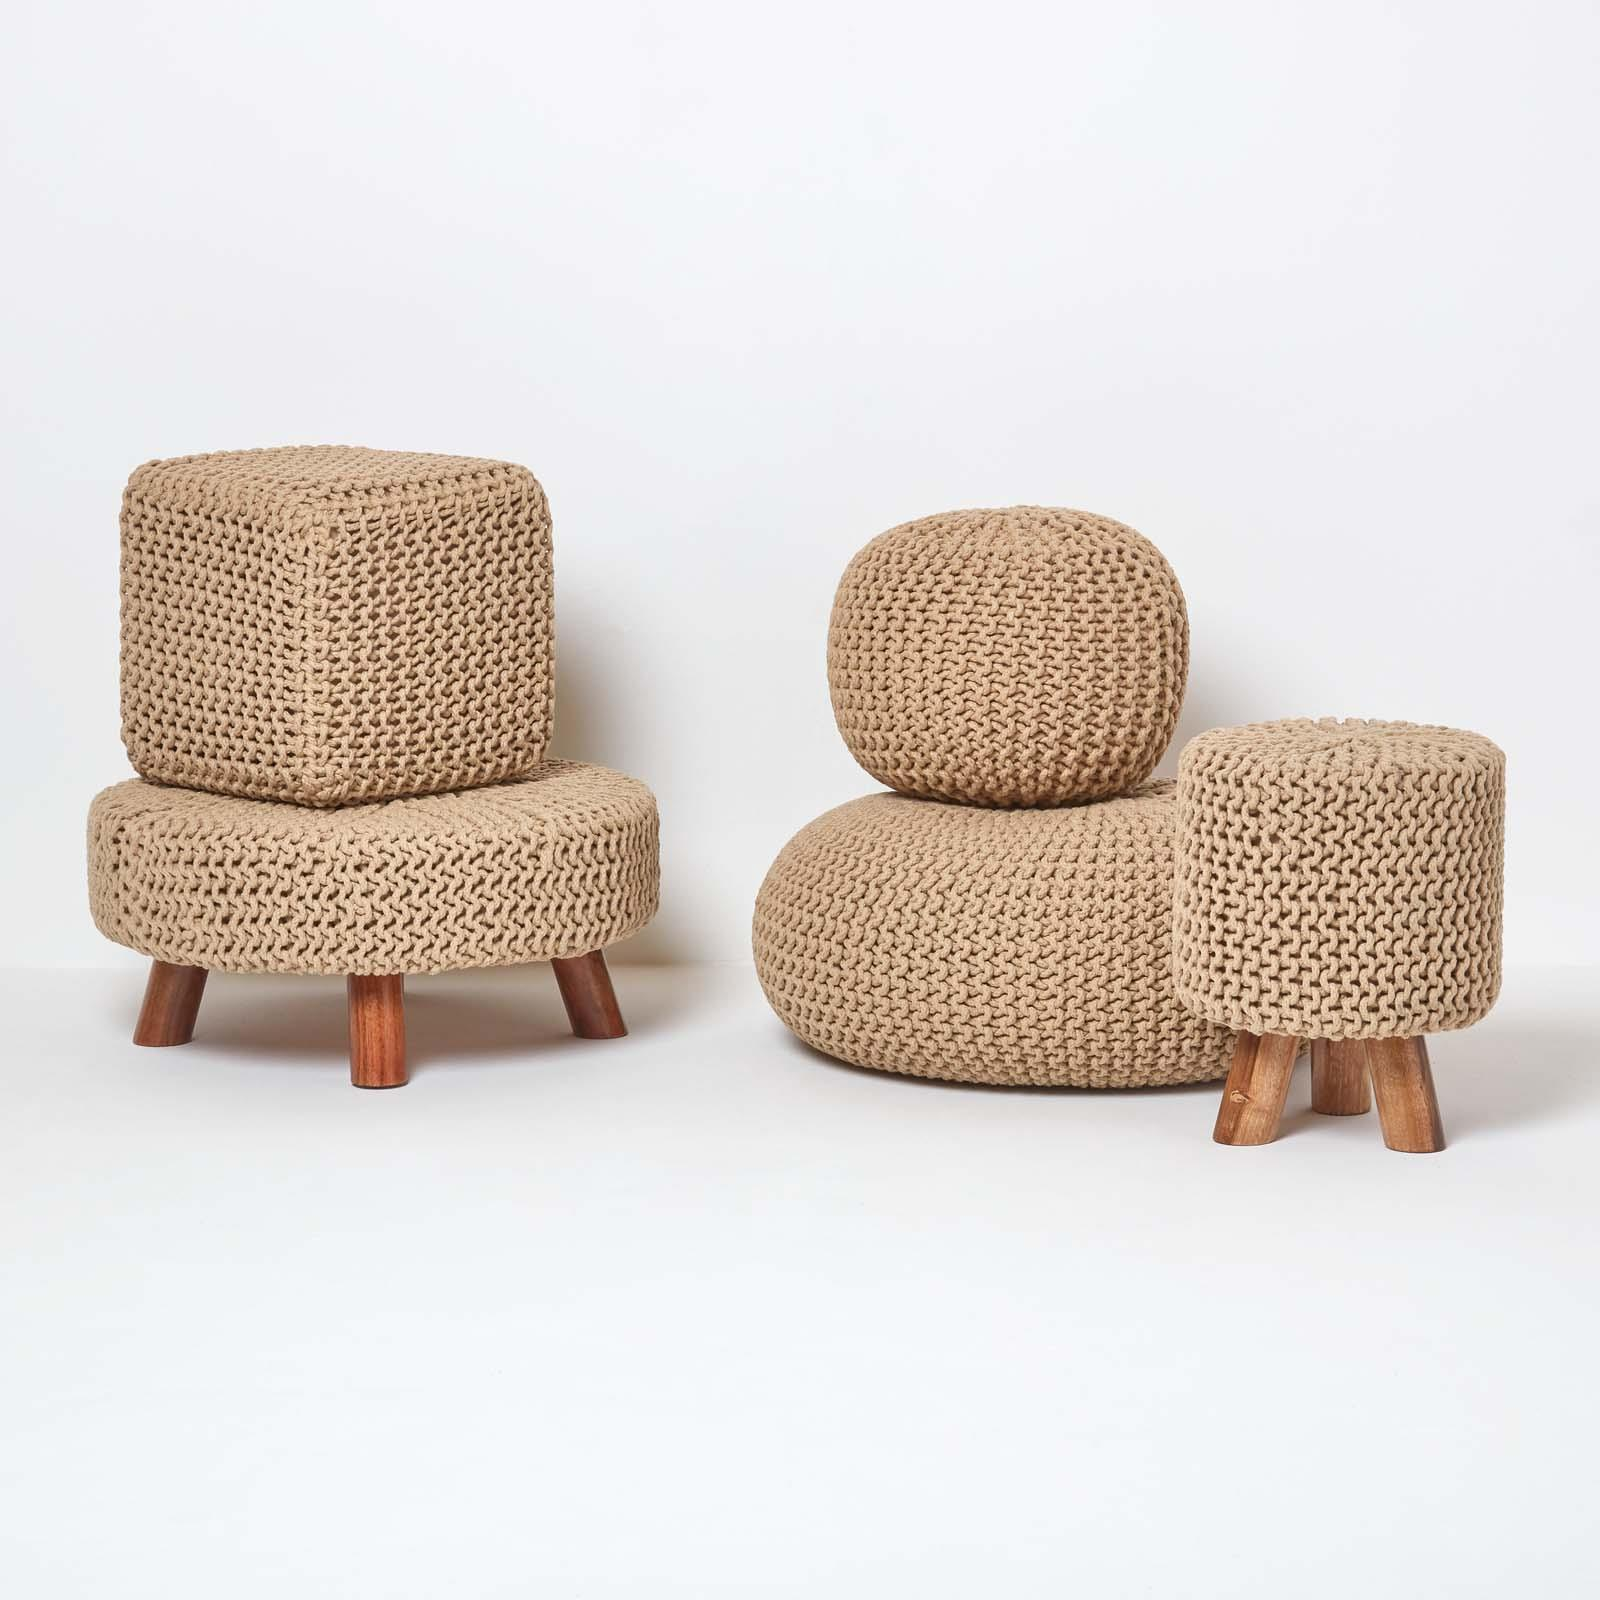 Hand-Knitted-100-Cotton-Pouffes-Round-Sphere-Or-Cube-Square-Chunky-Footstools thumbnail 78